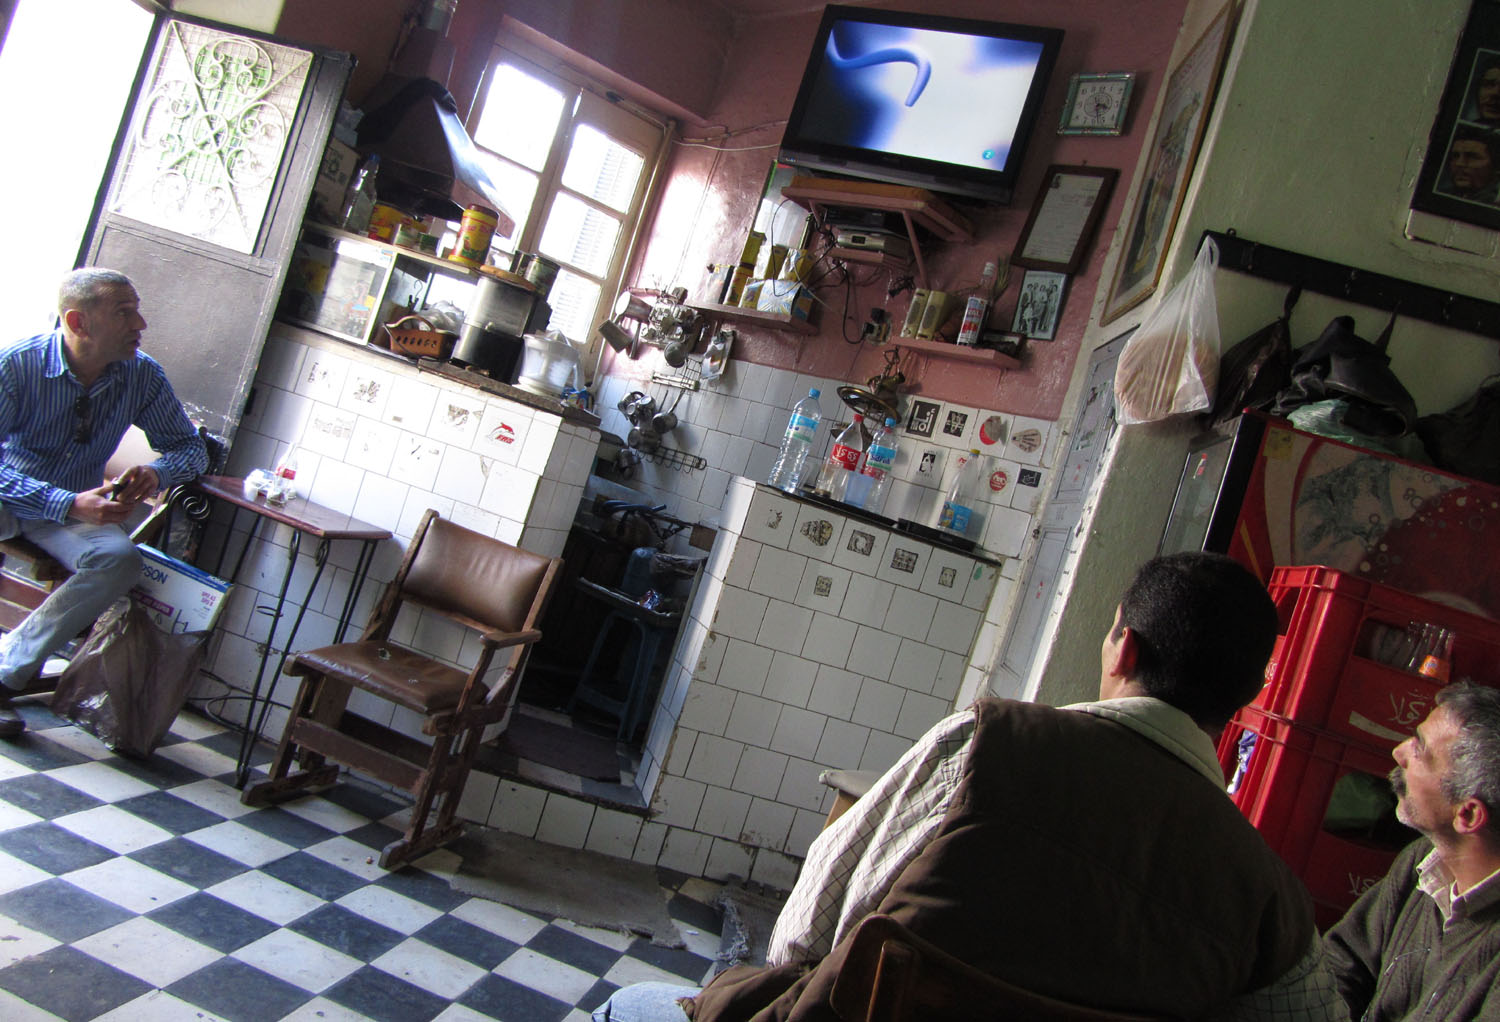 Morocco-Tangier-Bar-Television